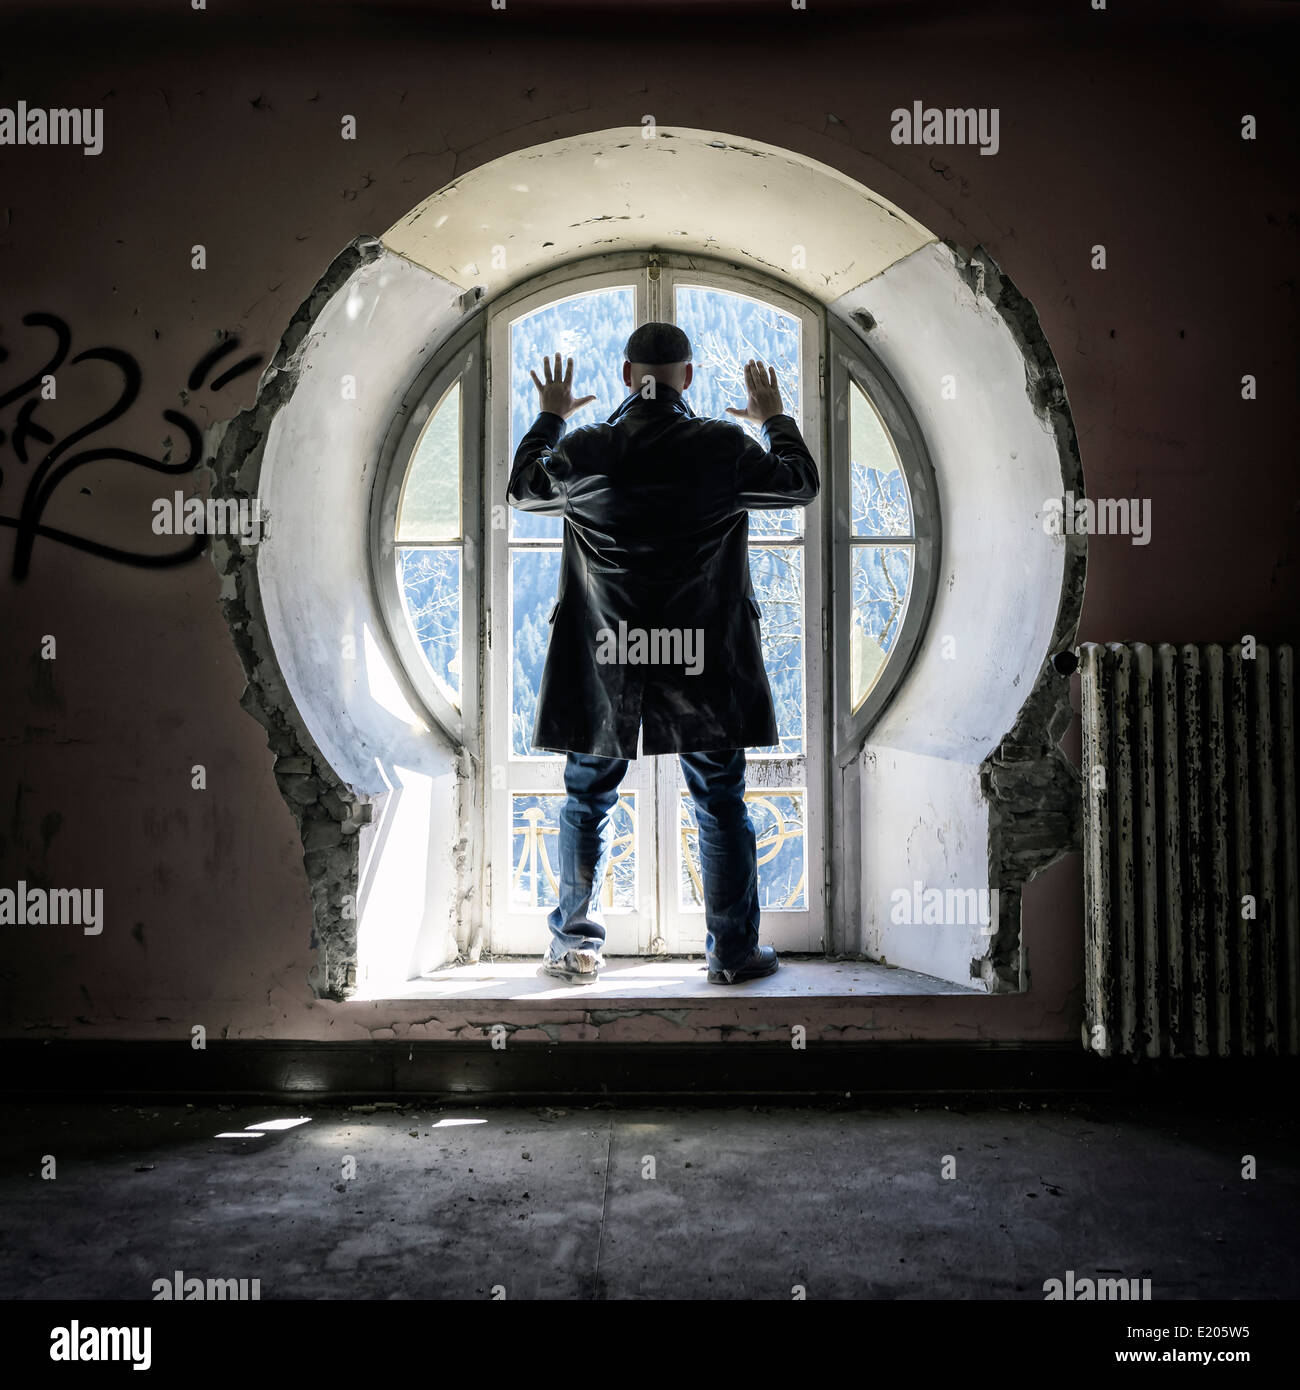 a man in front of an old window in an abandoned building - Stock Image